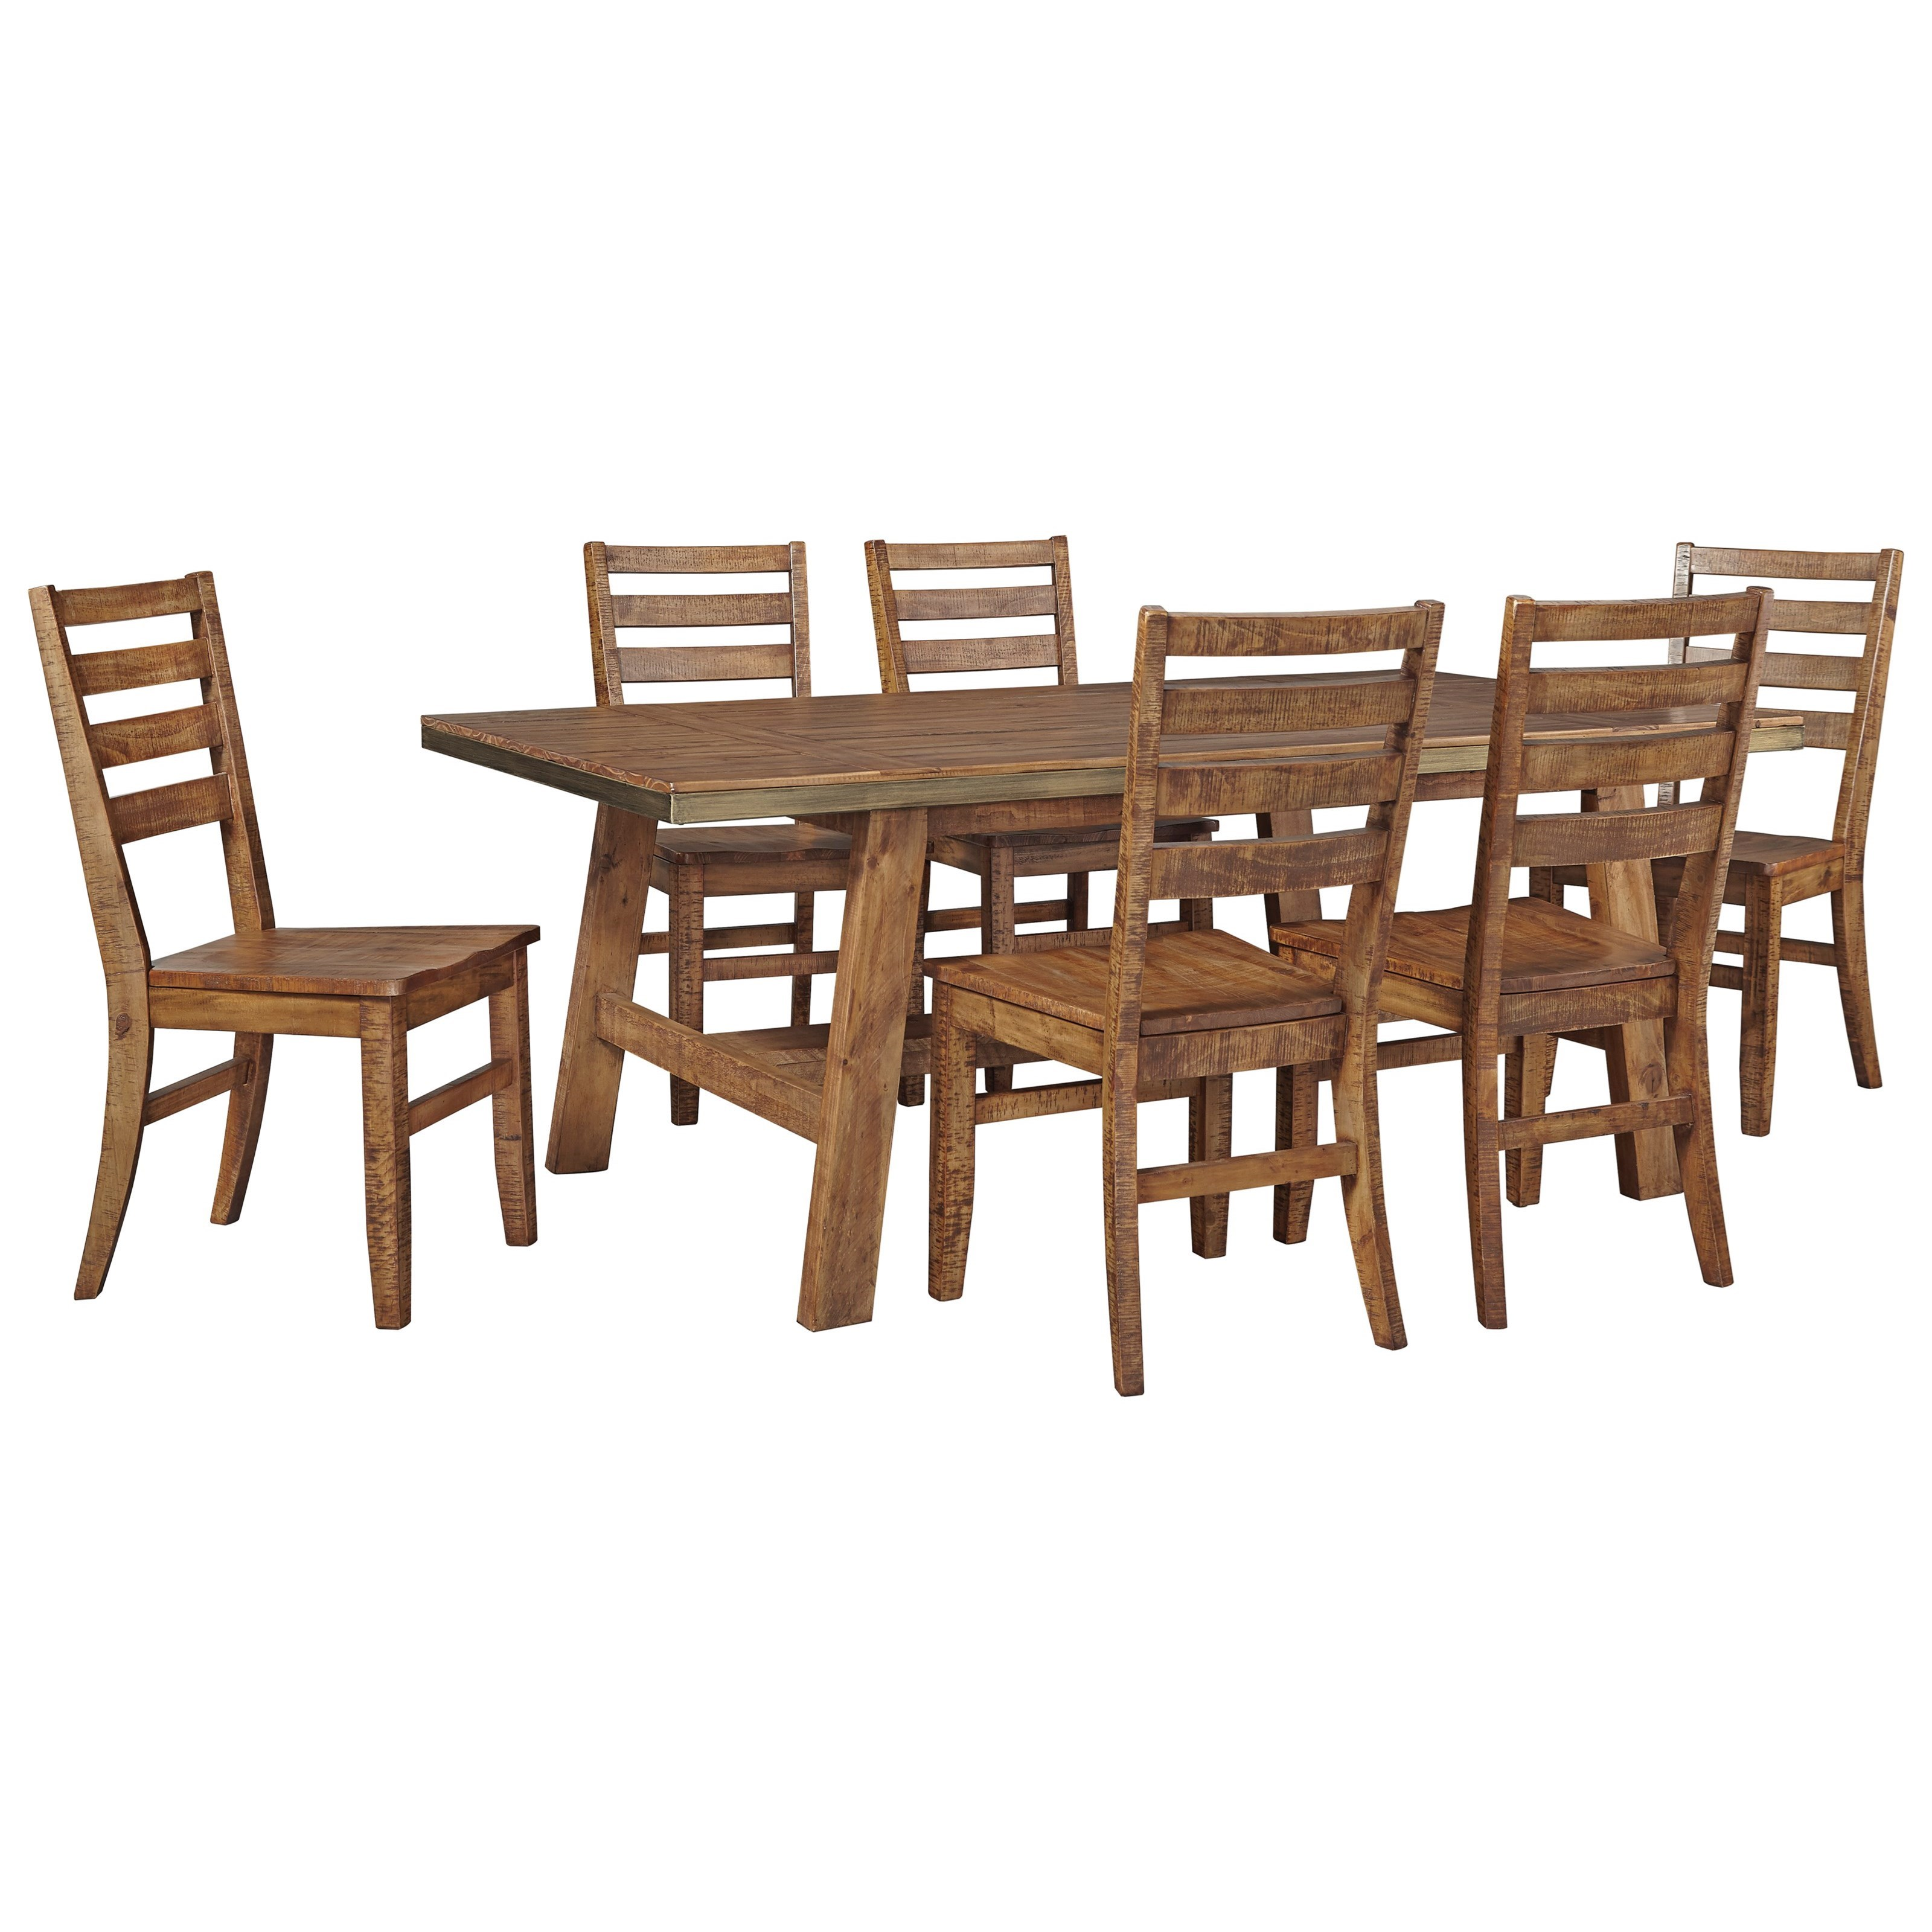 Signature Design by Ashley Dondie 7-Piece Solid Wood Dining Table Set - Item Number: D663-25+6x01